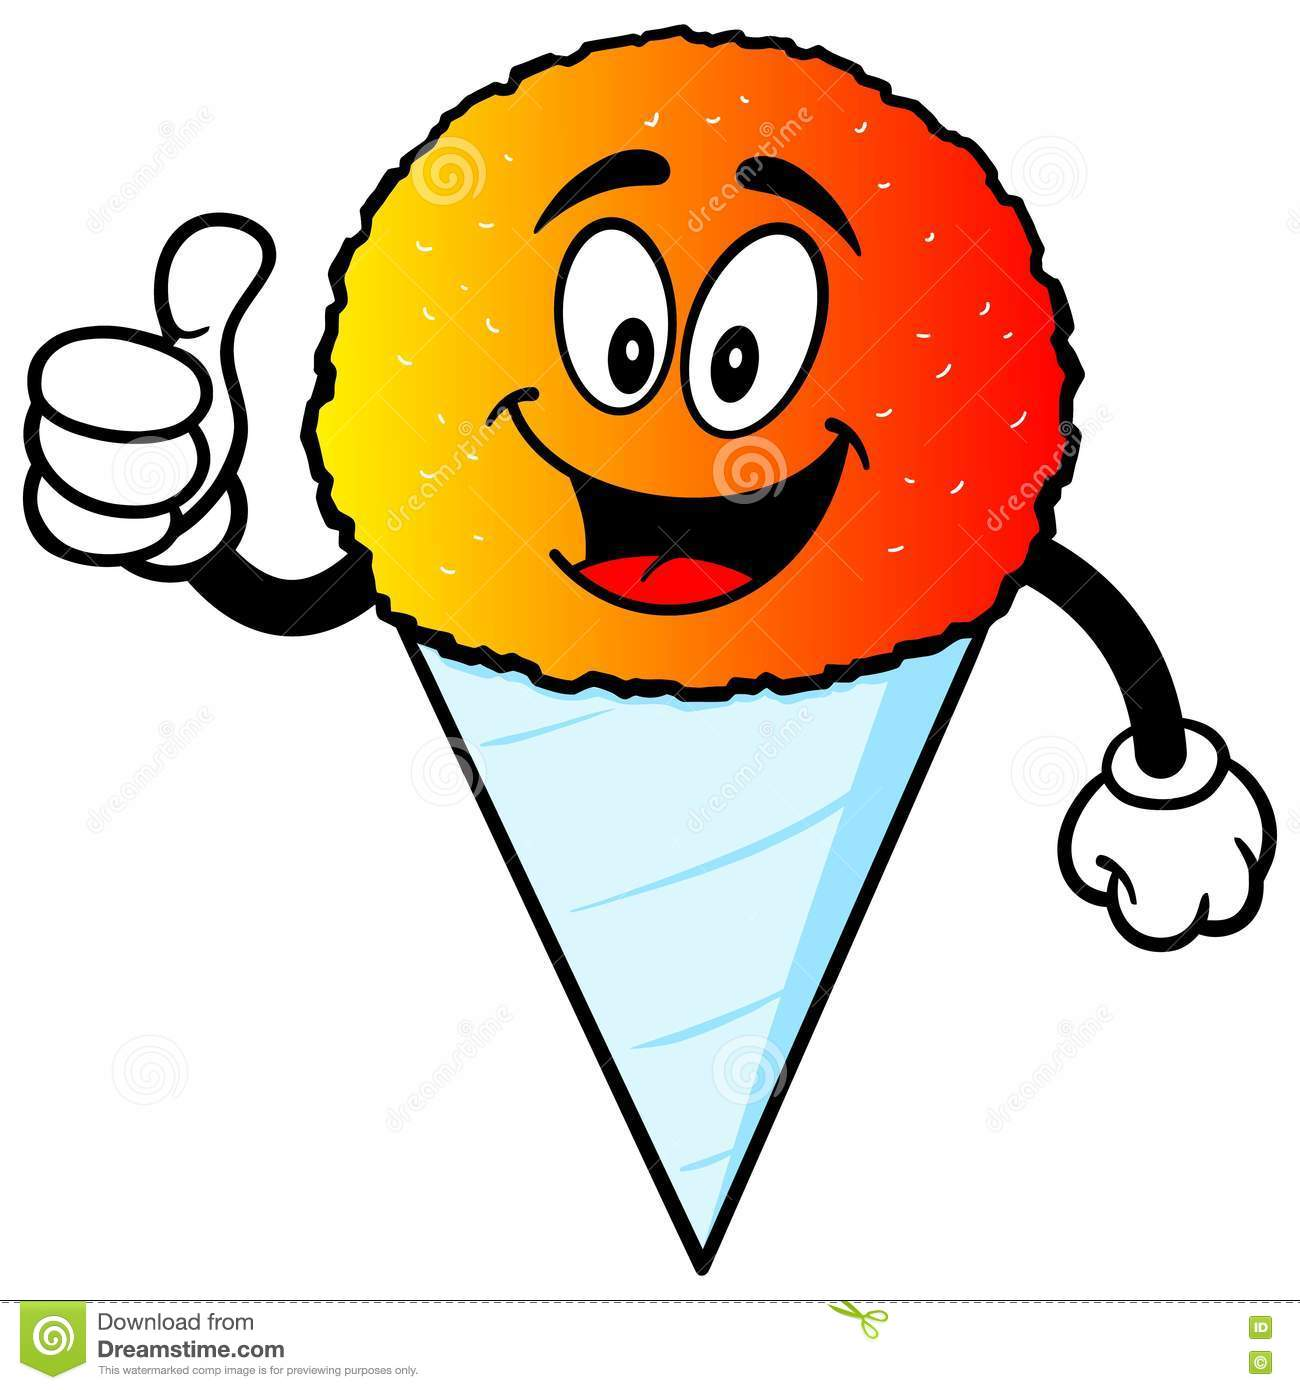 hight resolution of snow cone stock illustrations 5 246 snow cone stock illustrations vectors clipart dreamstime